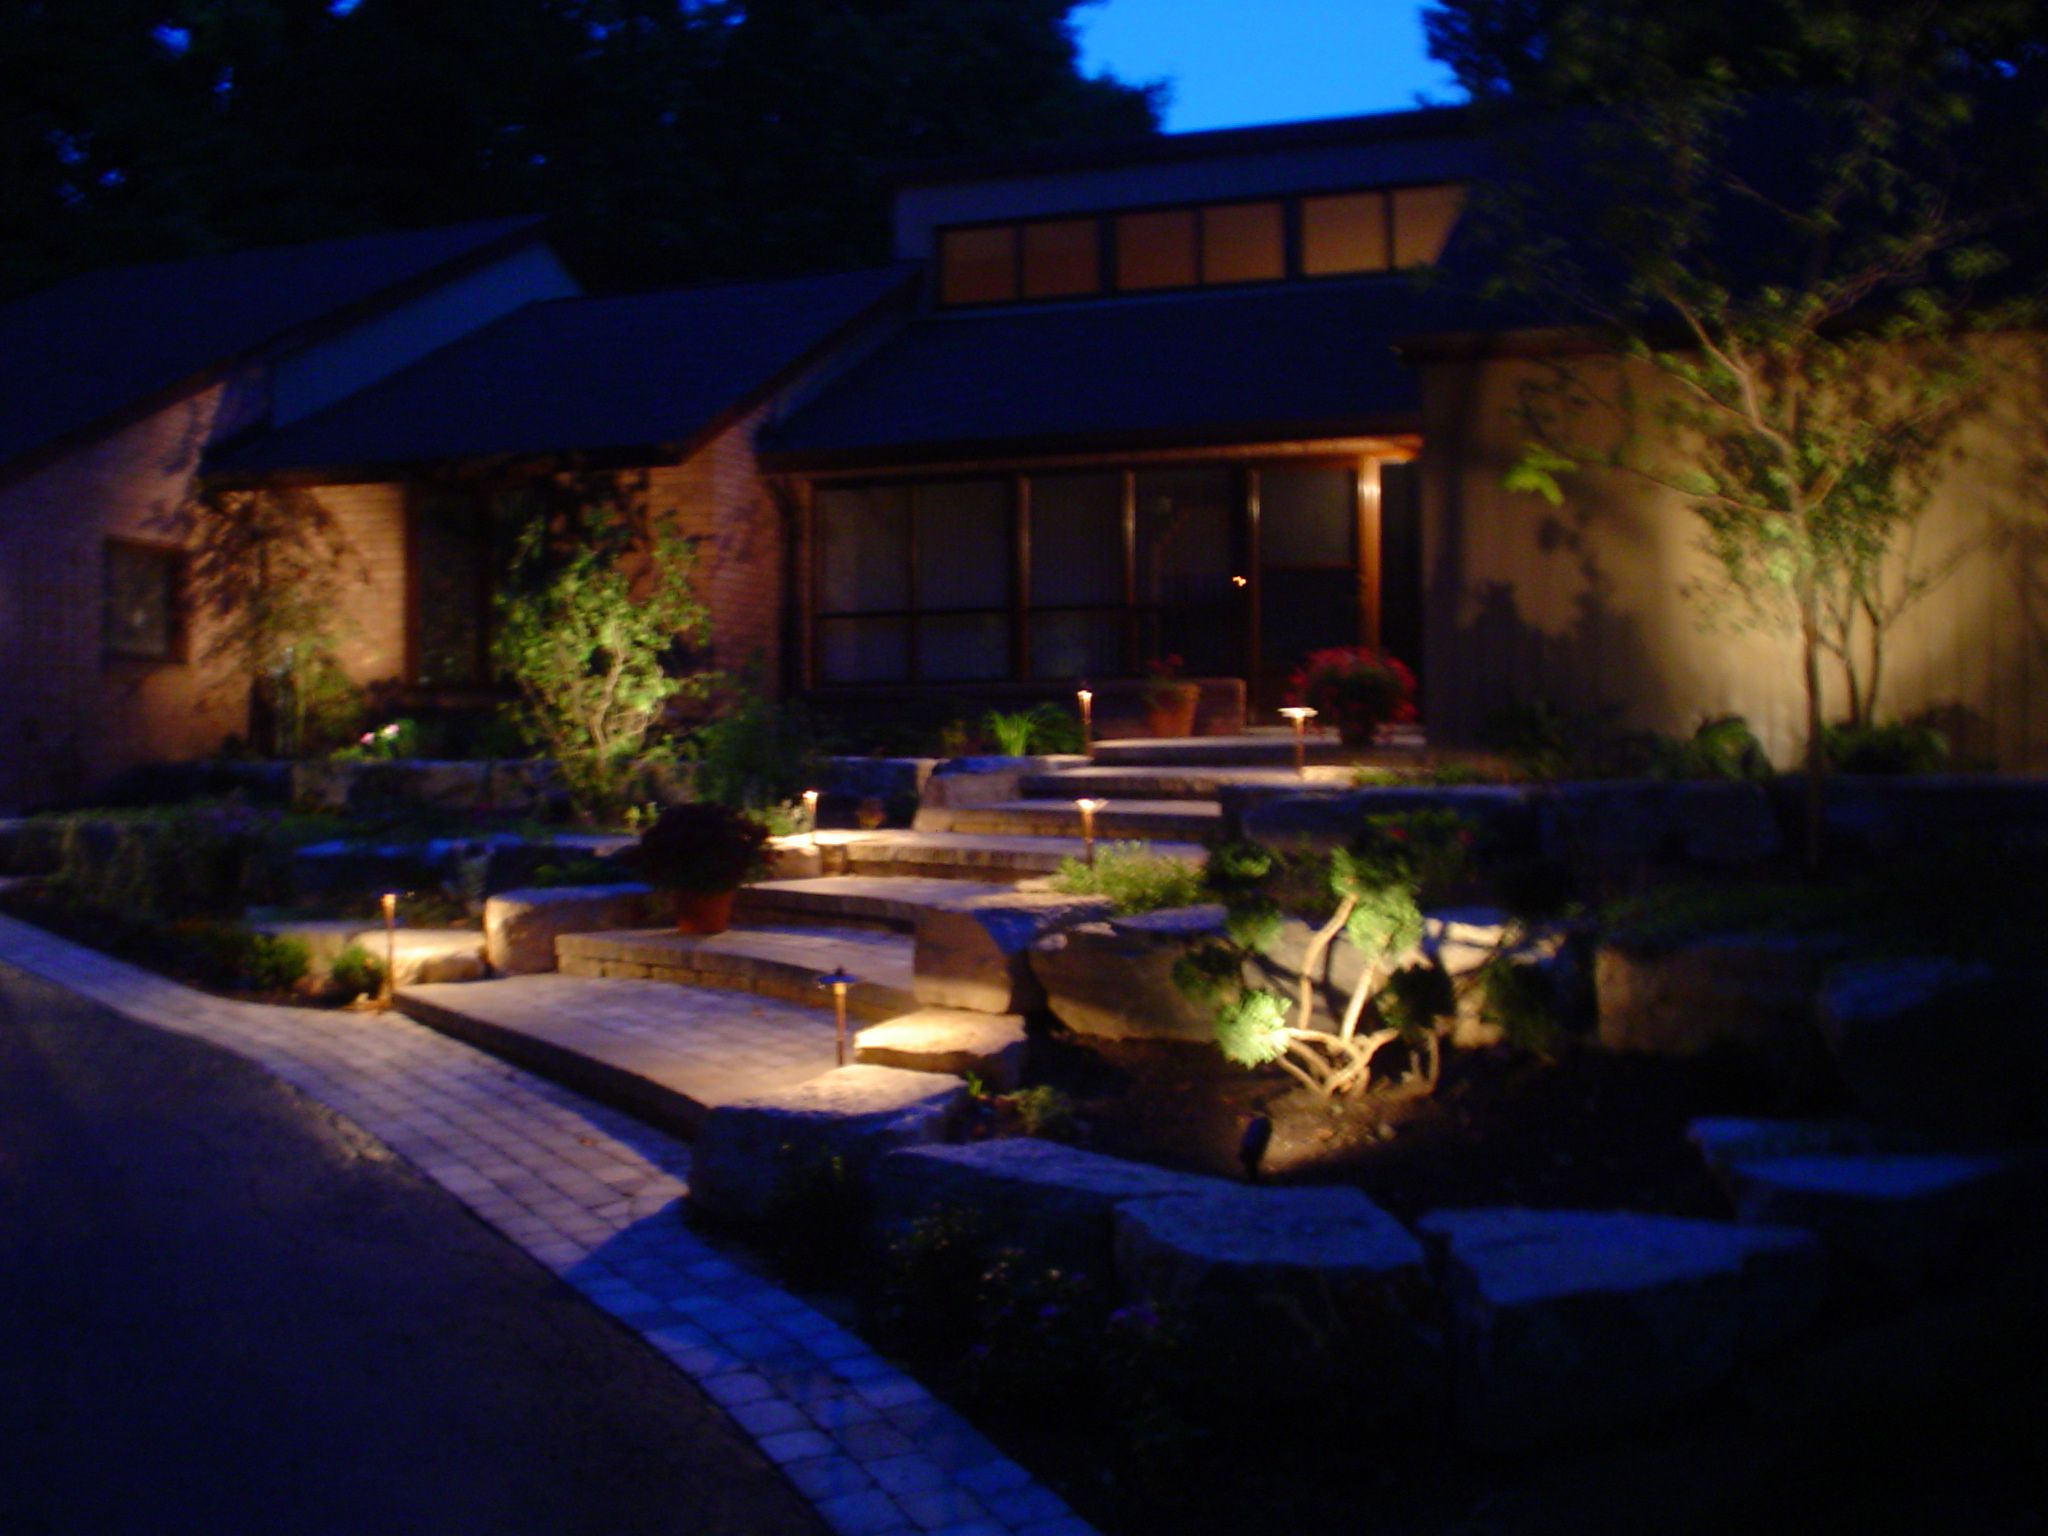 antique landscape lighting designs we need backyard lighting - Outdoor Lighting Design Ideas